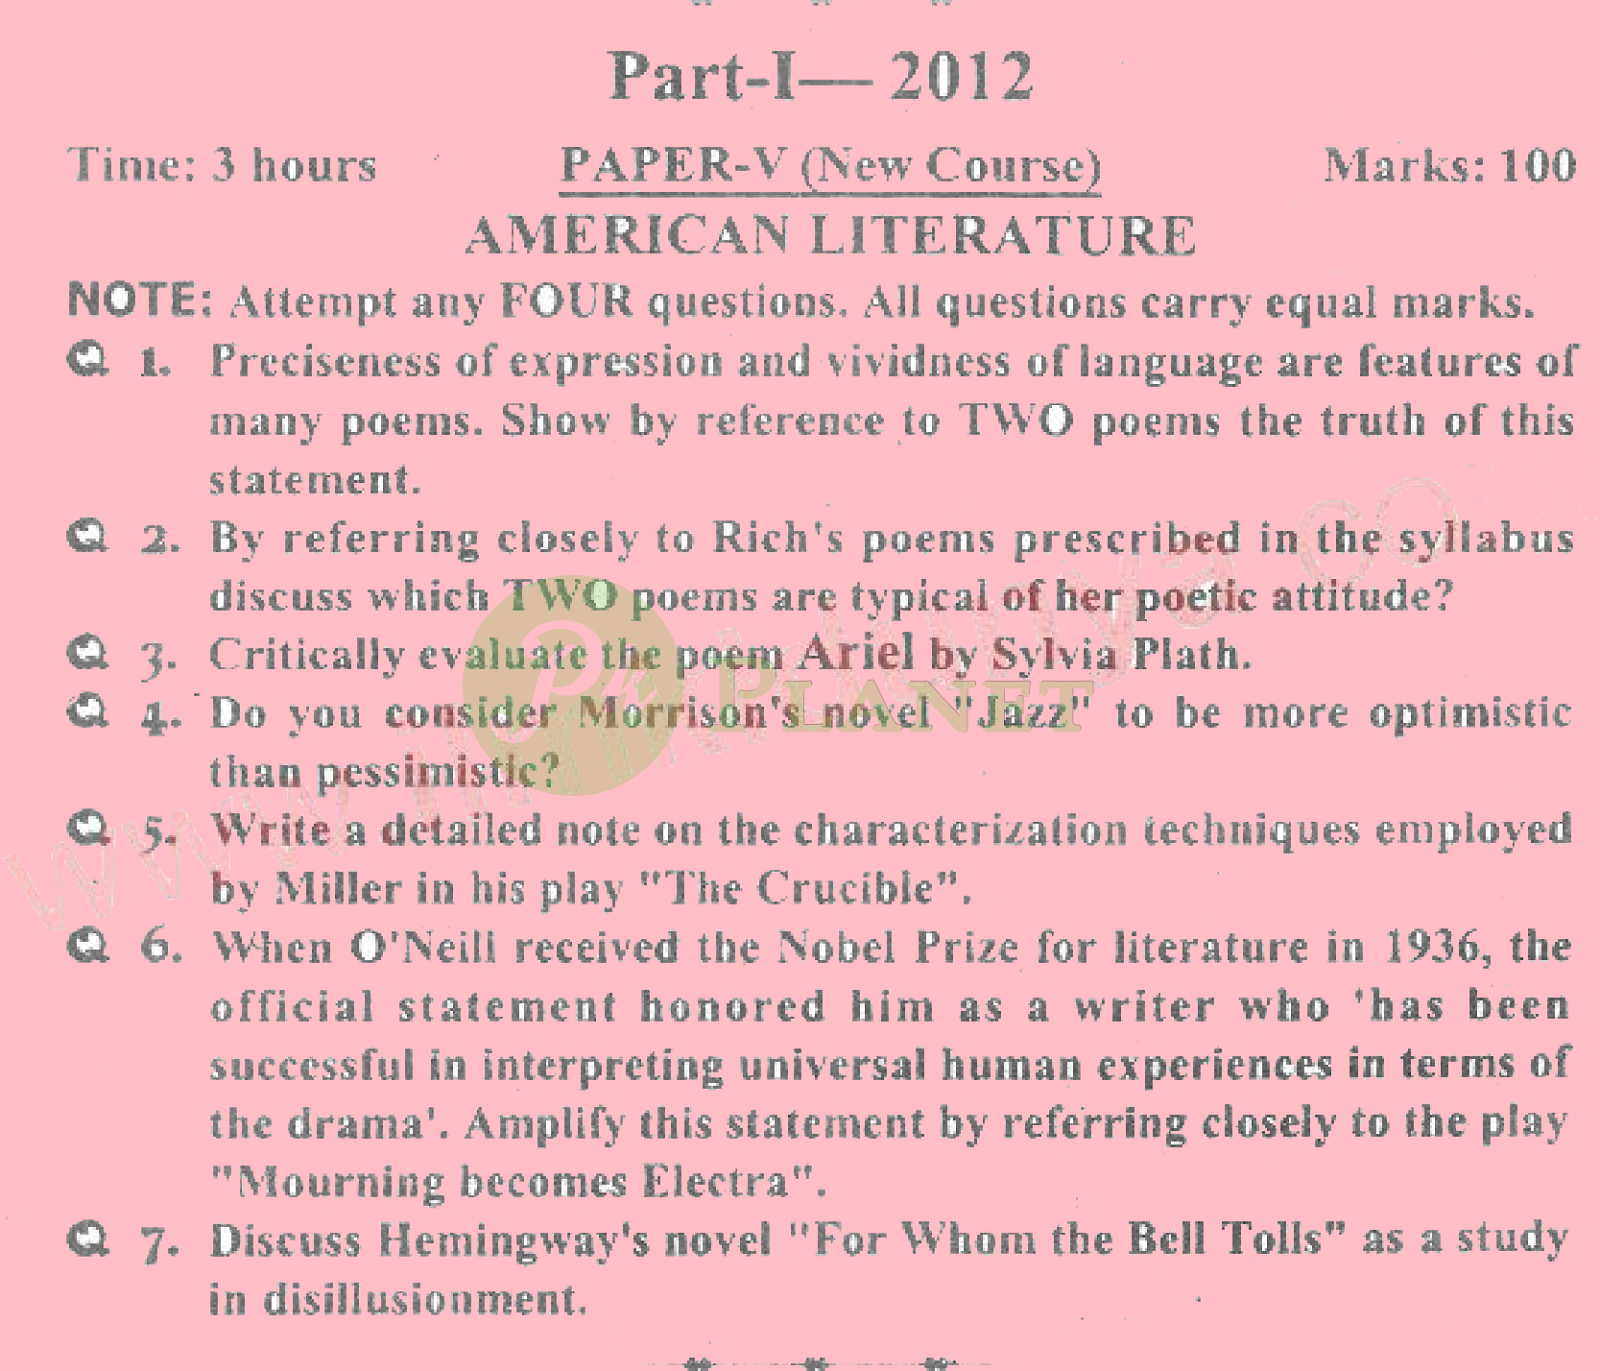 ma english part 1 past papers punjab university 2012 american literature